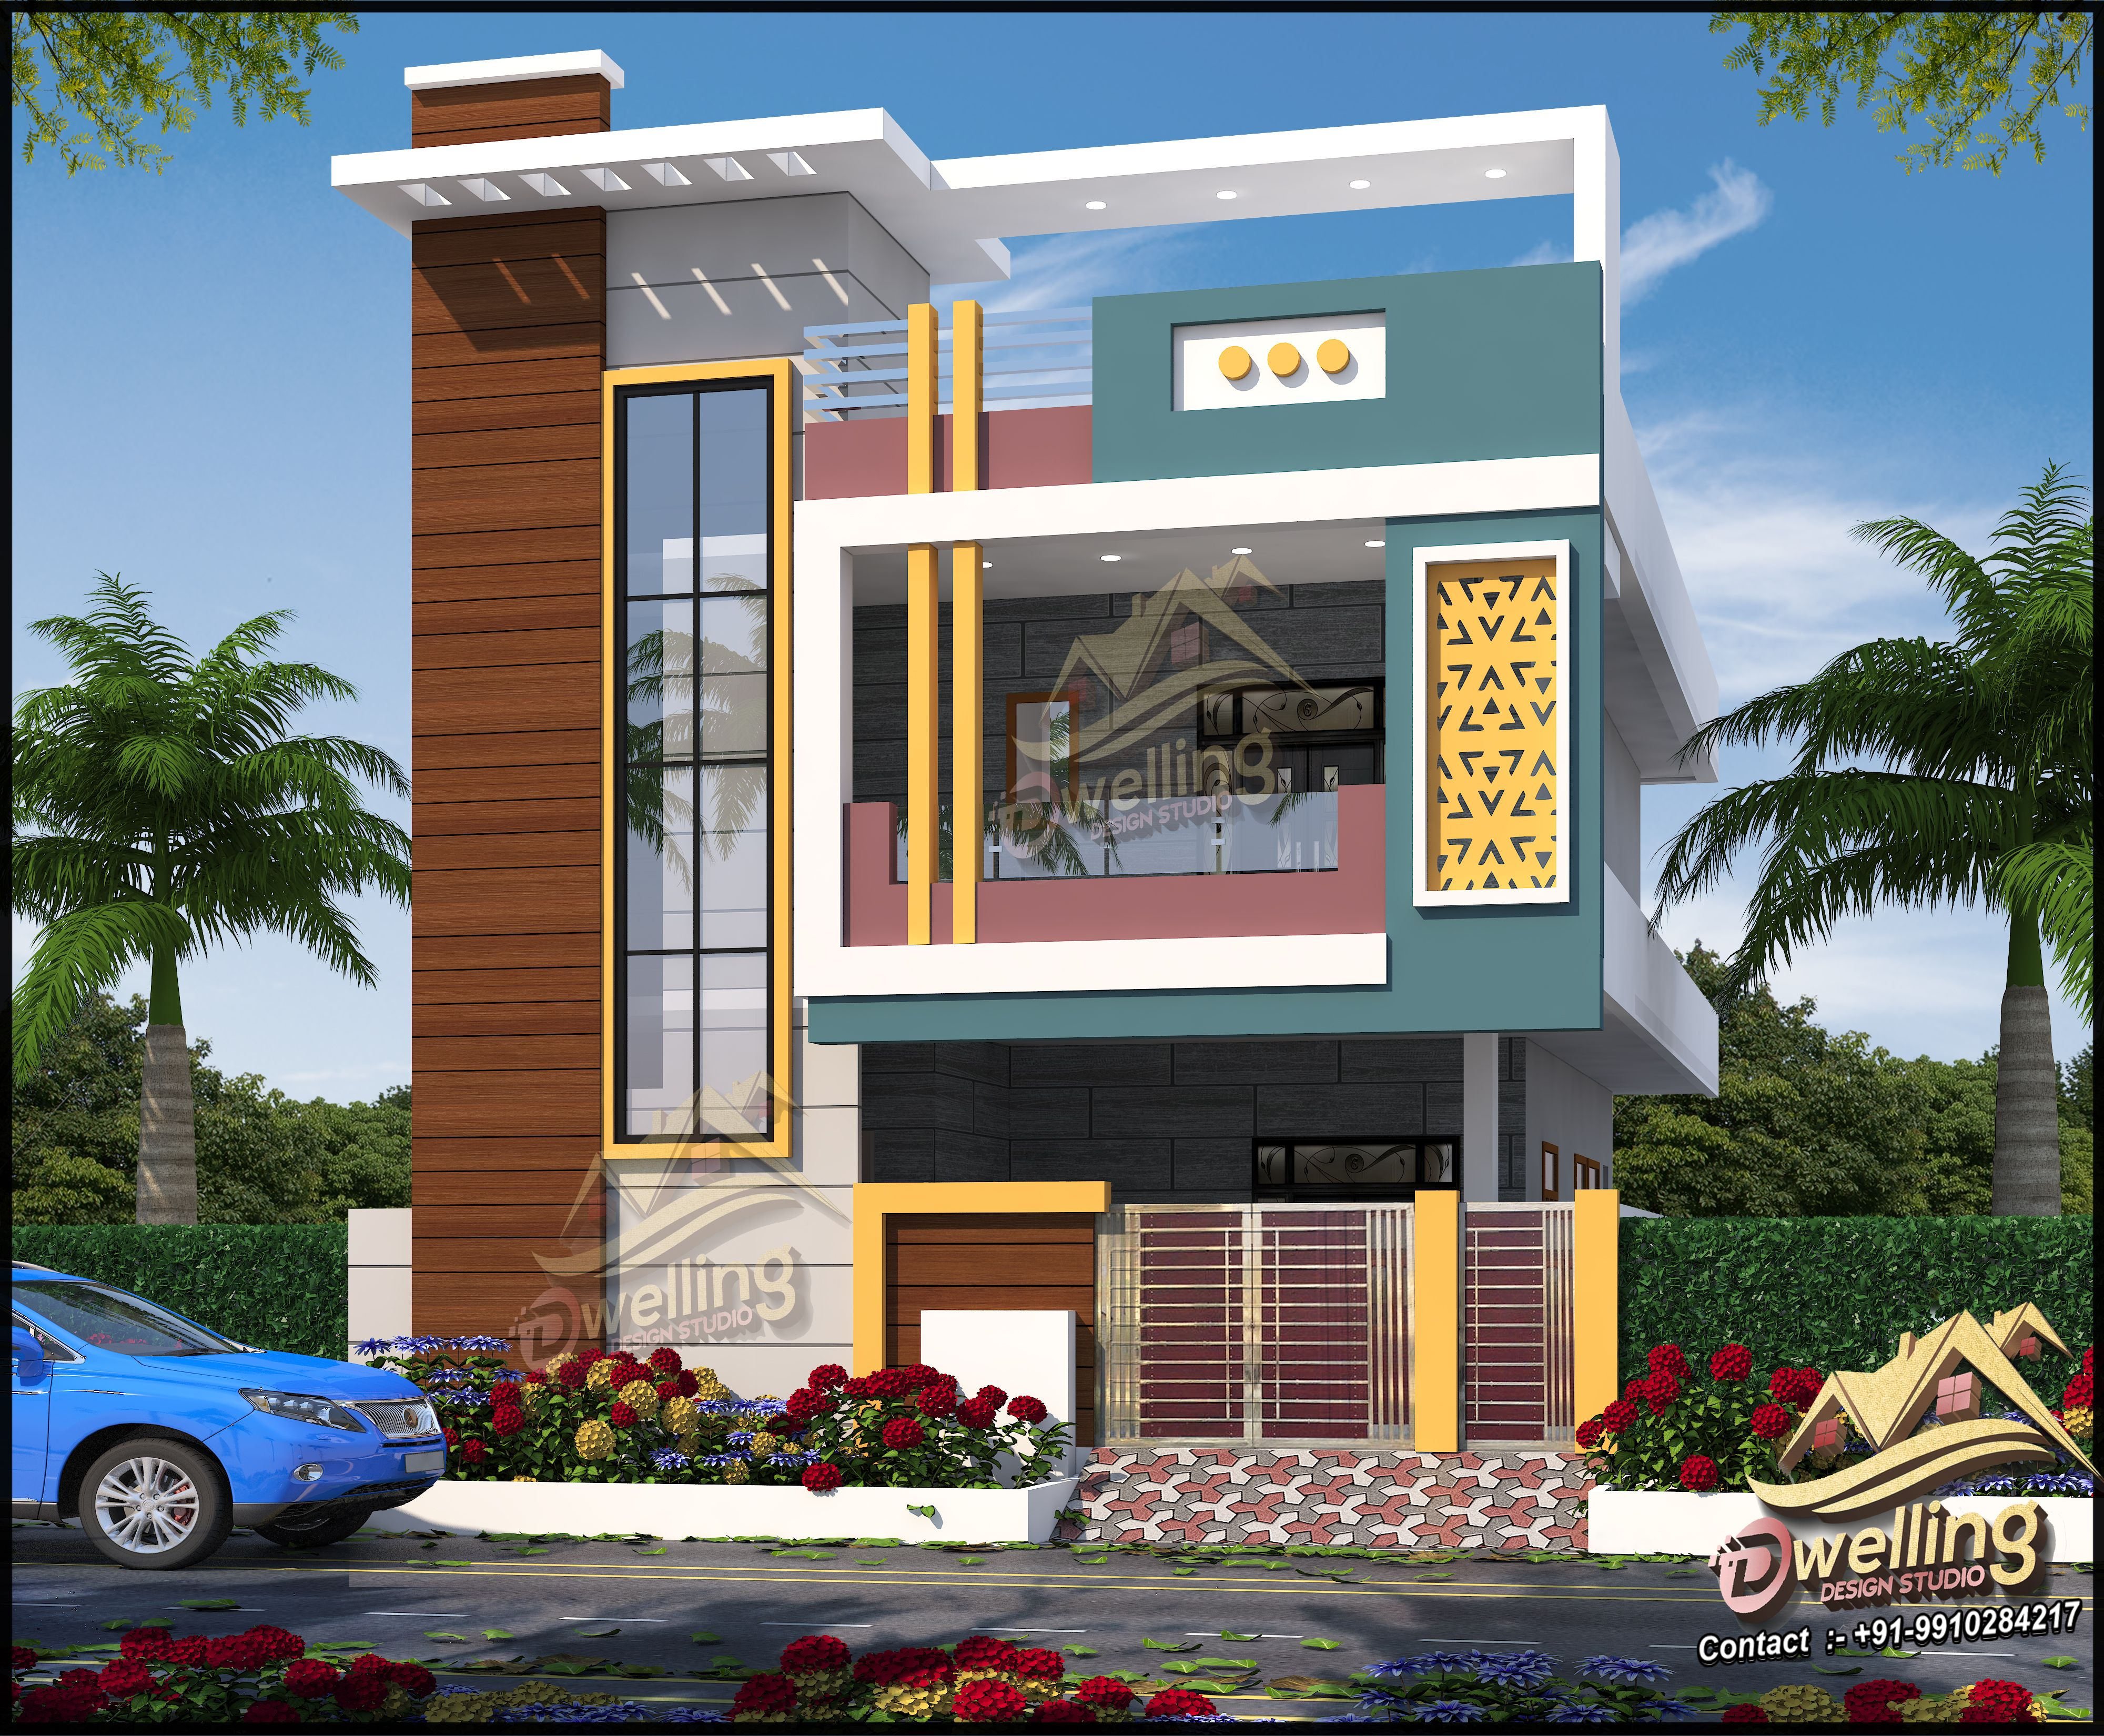 She even open a view window. Call Or Whatsapp Me 919910284217 Mail Dwellingdesignstudio99 Gmail Com In 2021 House Balcony Design Small House Front Design Small House Design Exterior